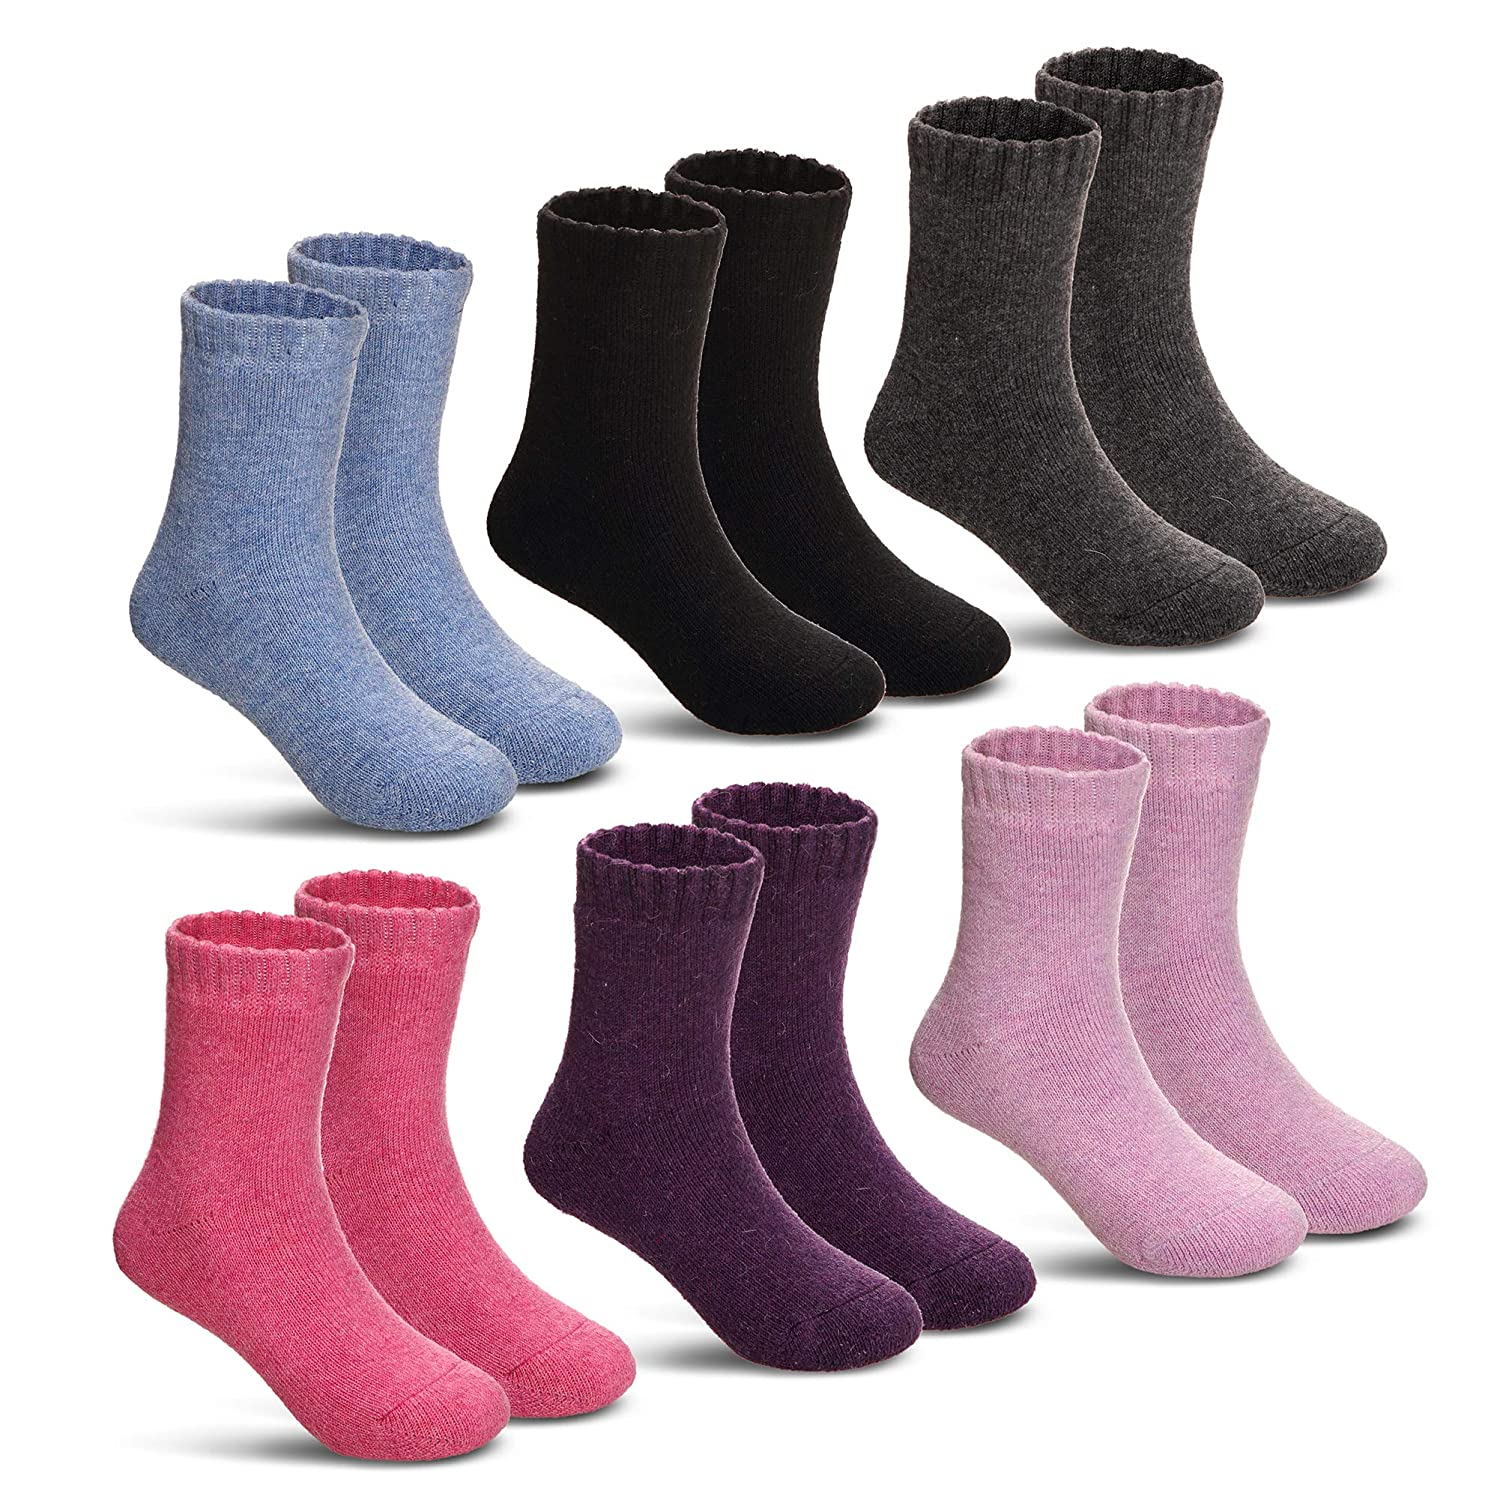 Children's Winter Warm Wool Solid Color Socks Kids Boy Girls Thermal Crew Socks 6 Pairs